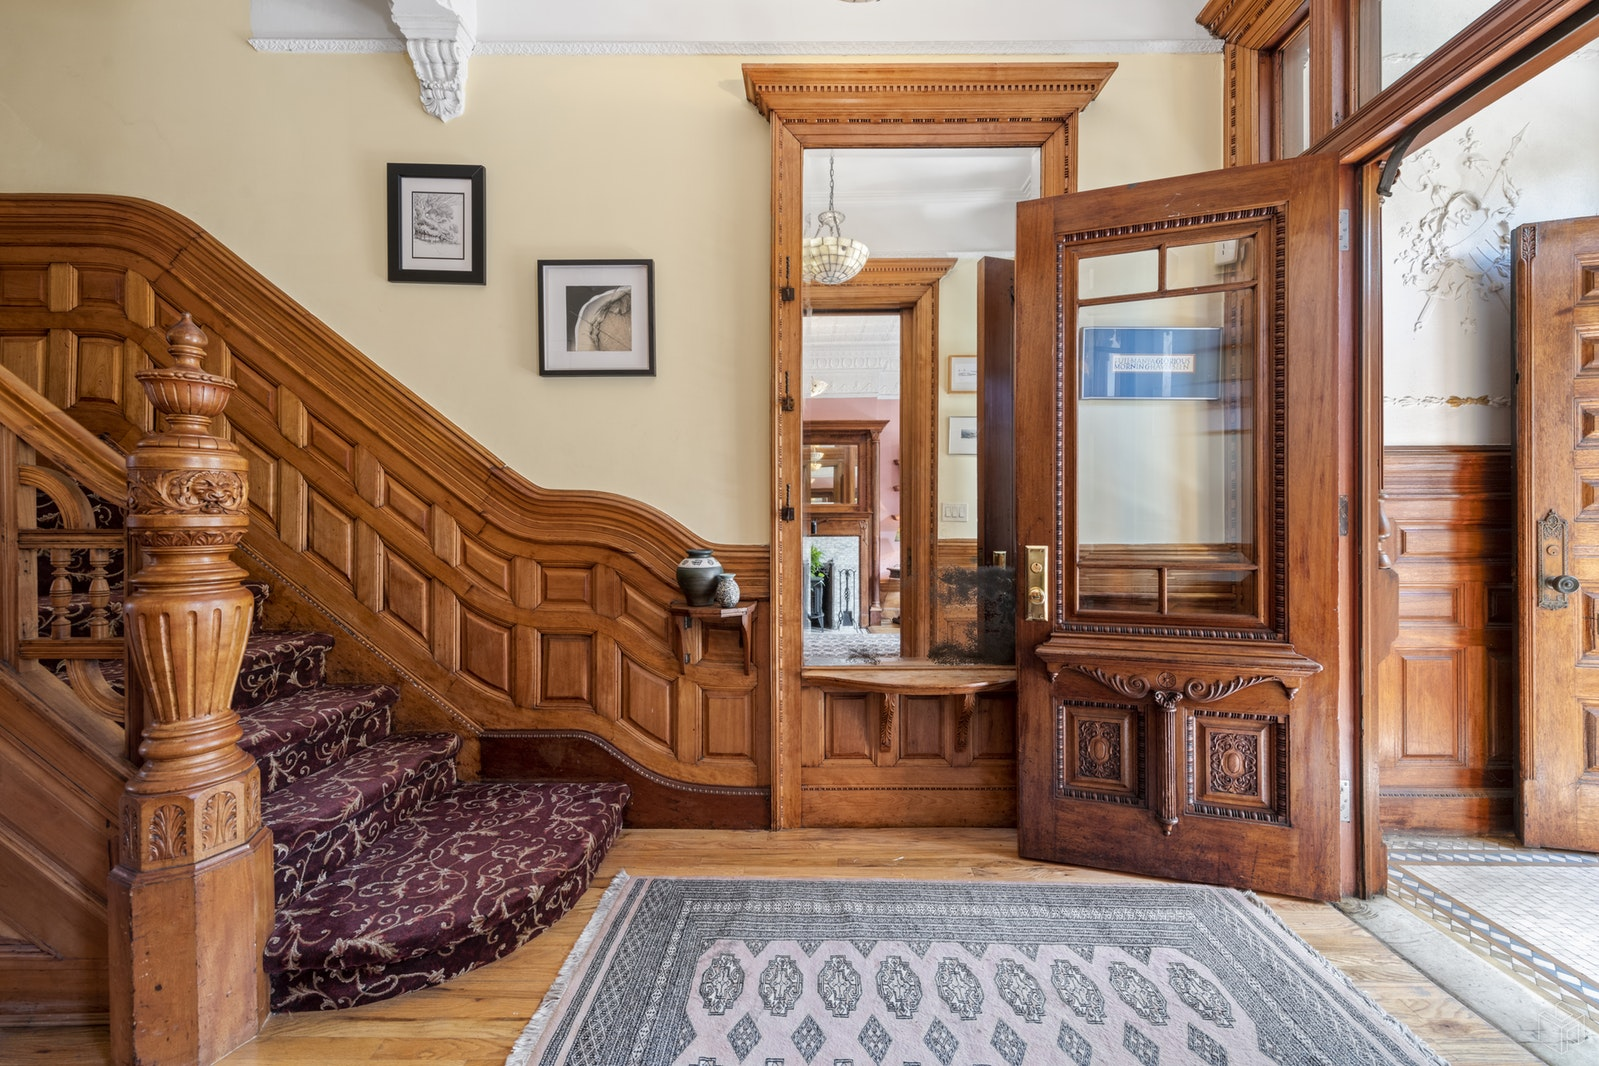 Illustrious Hamilton Heights Townhouse, Upper Manhattan, NYC, 10032, $2,795,000, Property For Sale, Halstead Real Estate, Photo 4